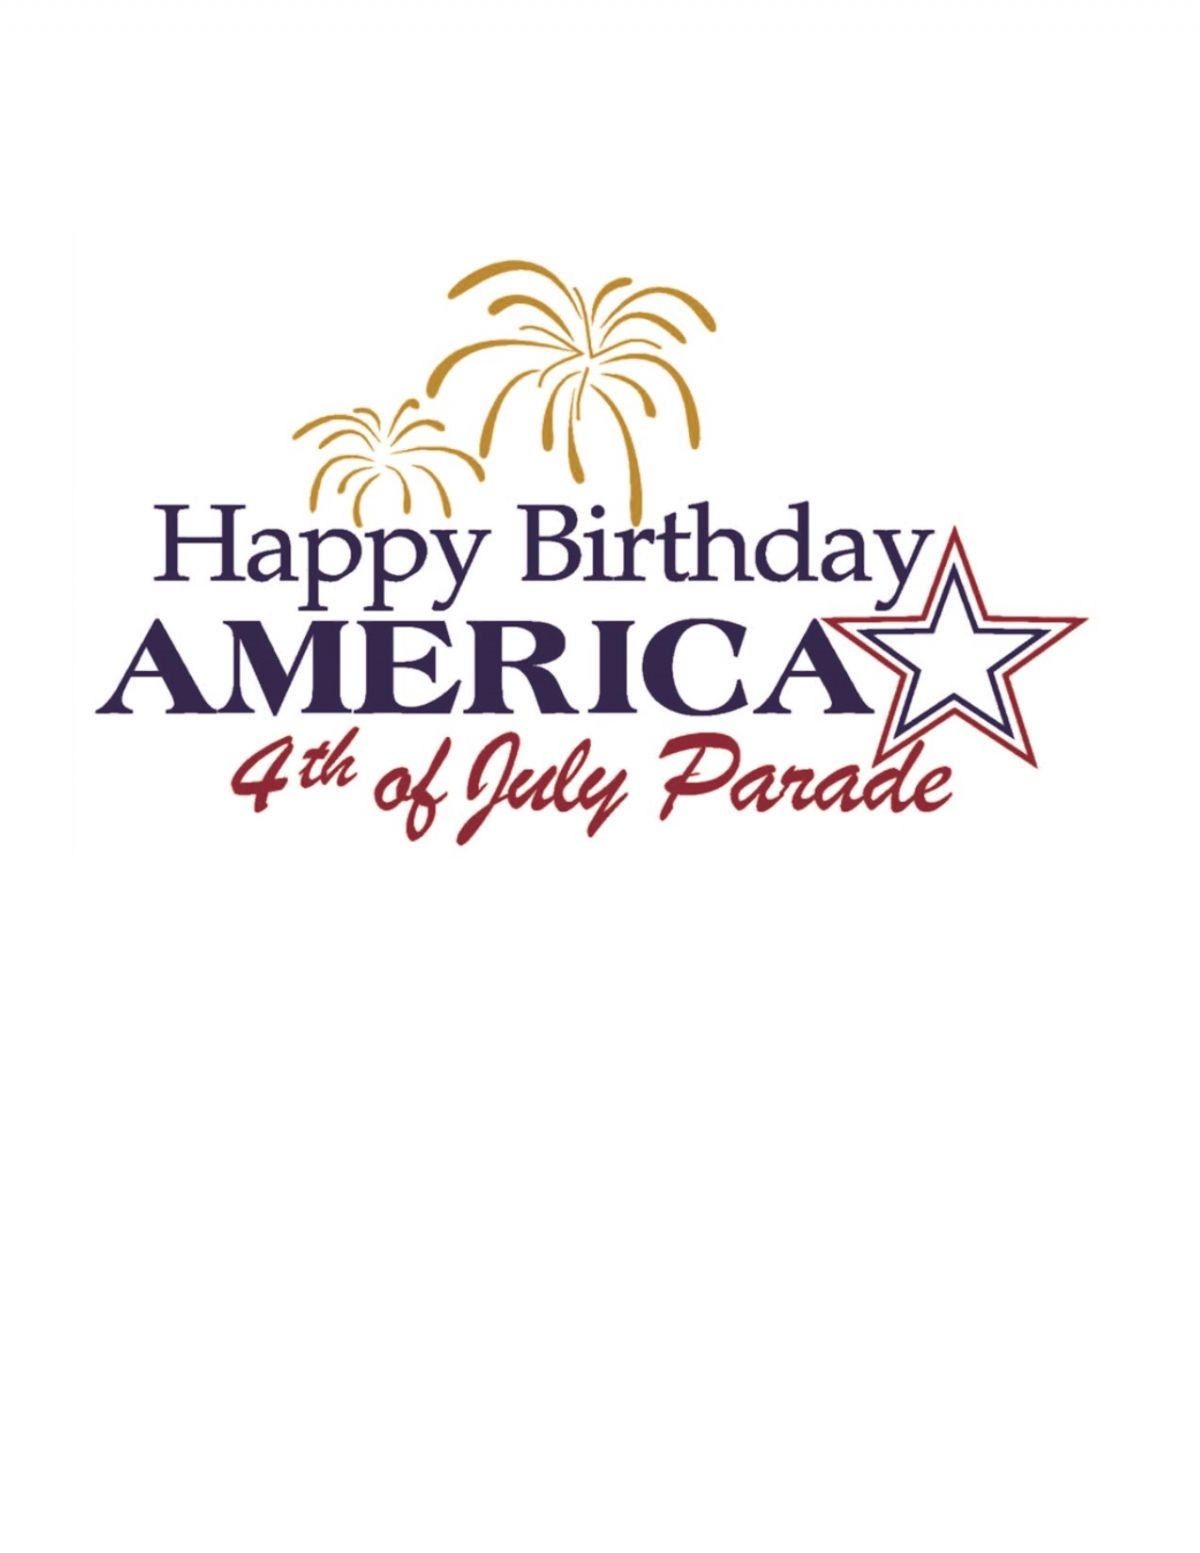 Purcellville's Annual 4th of July Parade